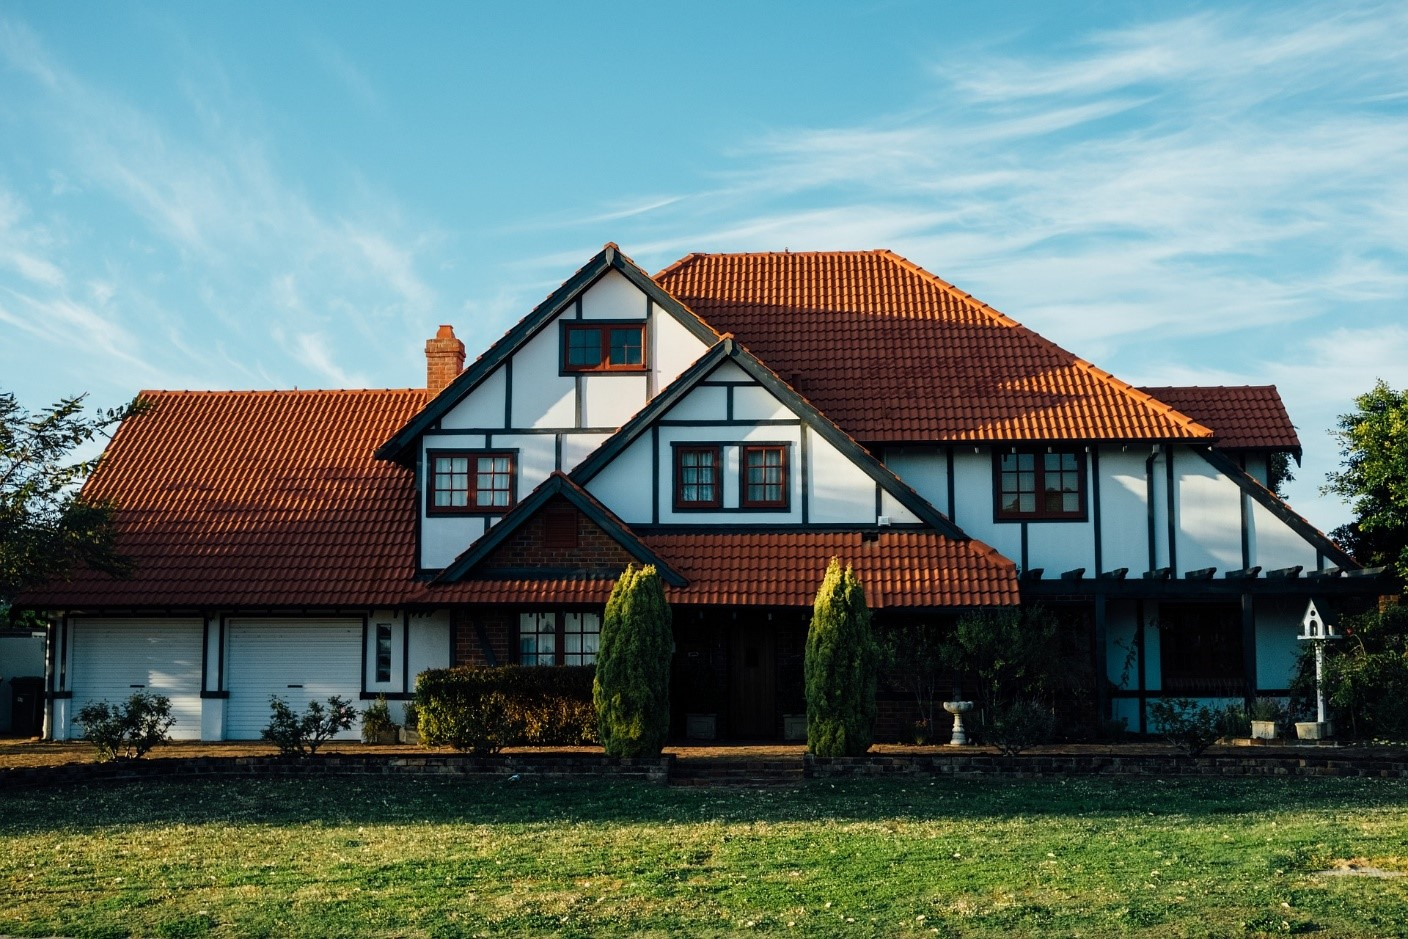 Types Of Roofing And Choosing The Right Roofing For Your Home